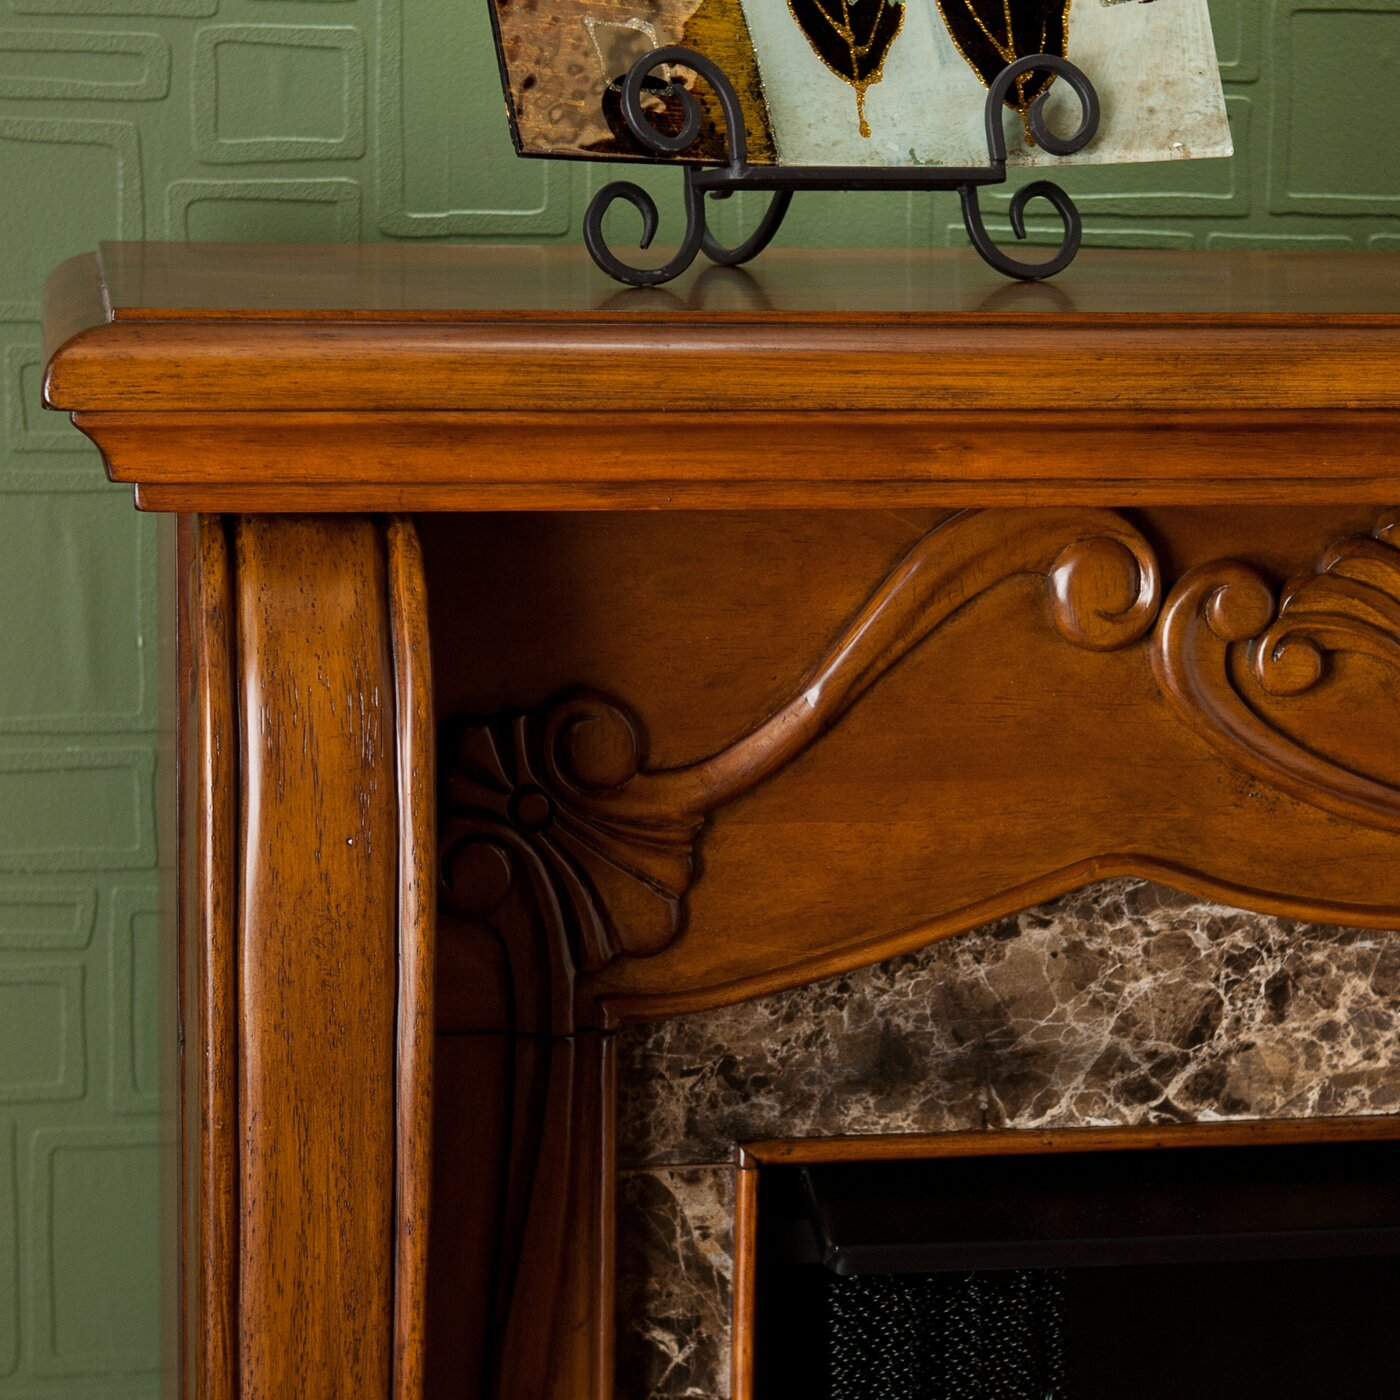 Wildon Home Ar Fulton Electric Fireplace Amp Reviews Wayfair . - Electric Fireplaces Online Authorized Dealer Of Dimplex Fireplaces